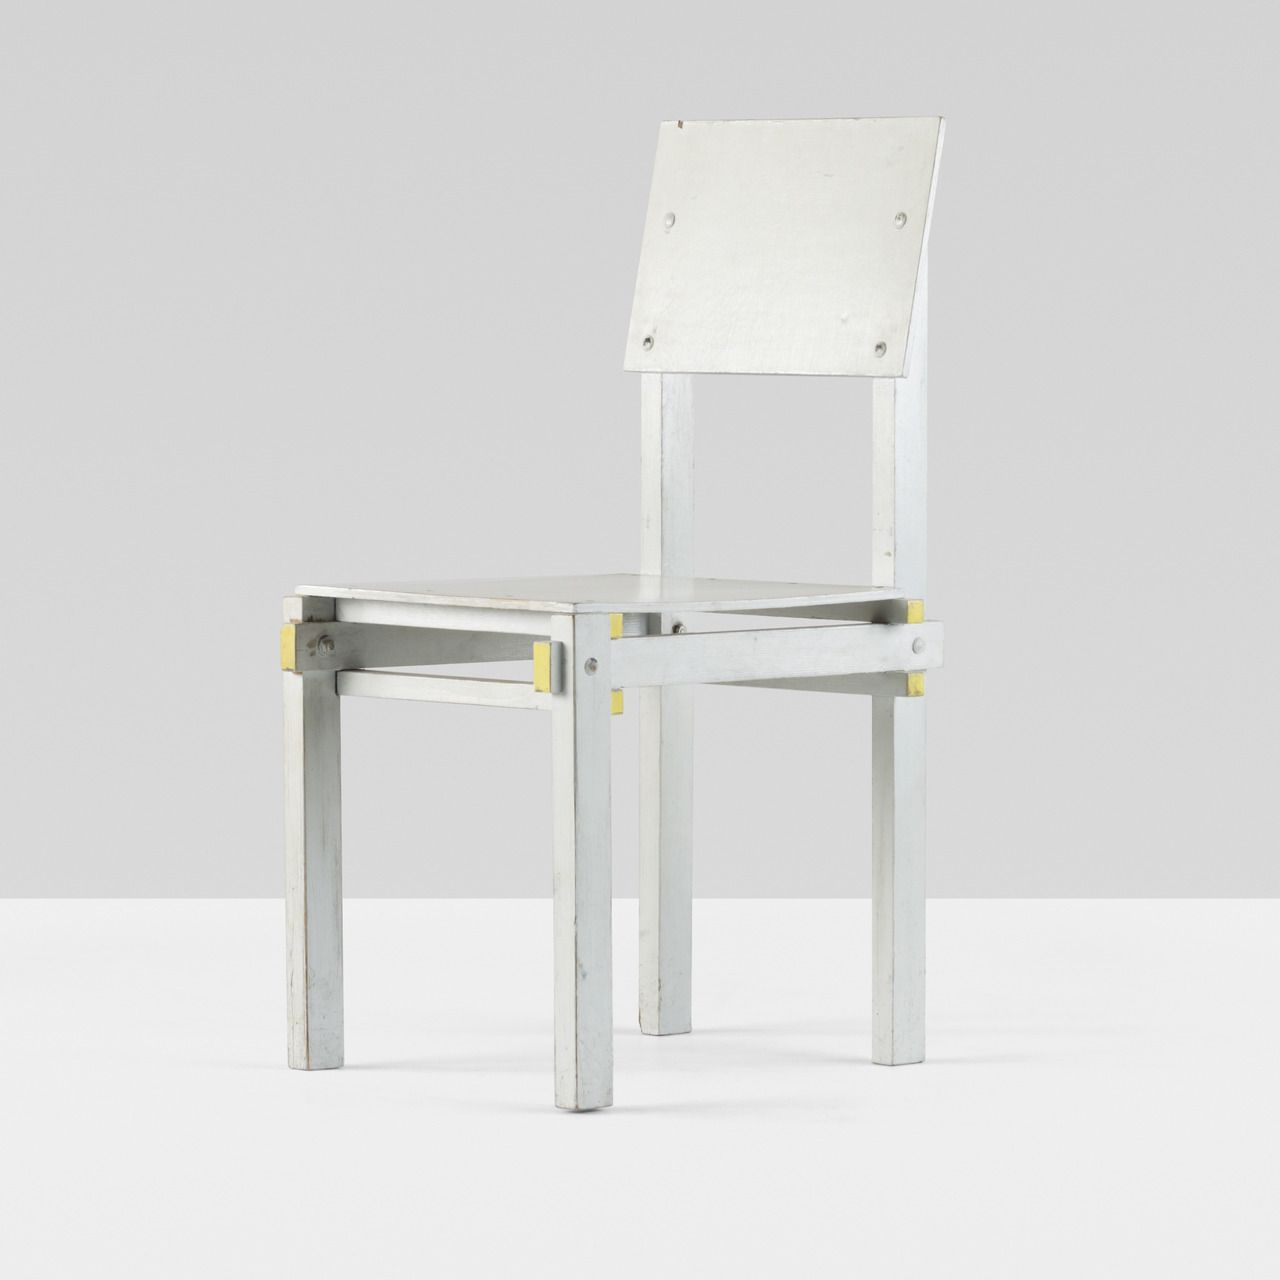 Gerrit rietveld chair for sale - Gerrit Rietveld Military Chair 1 1923